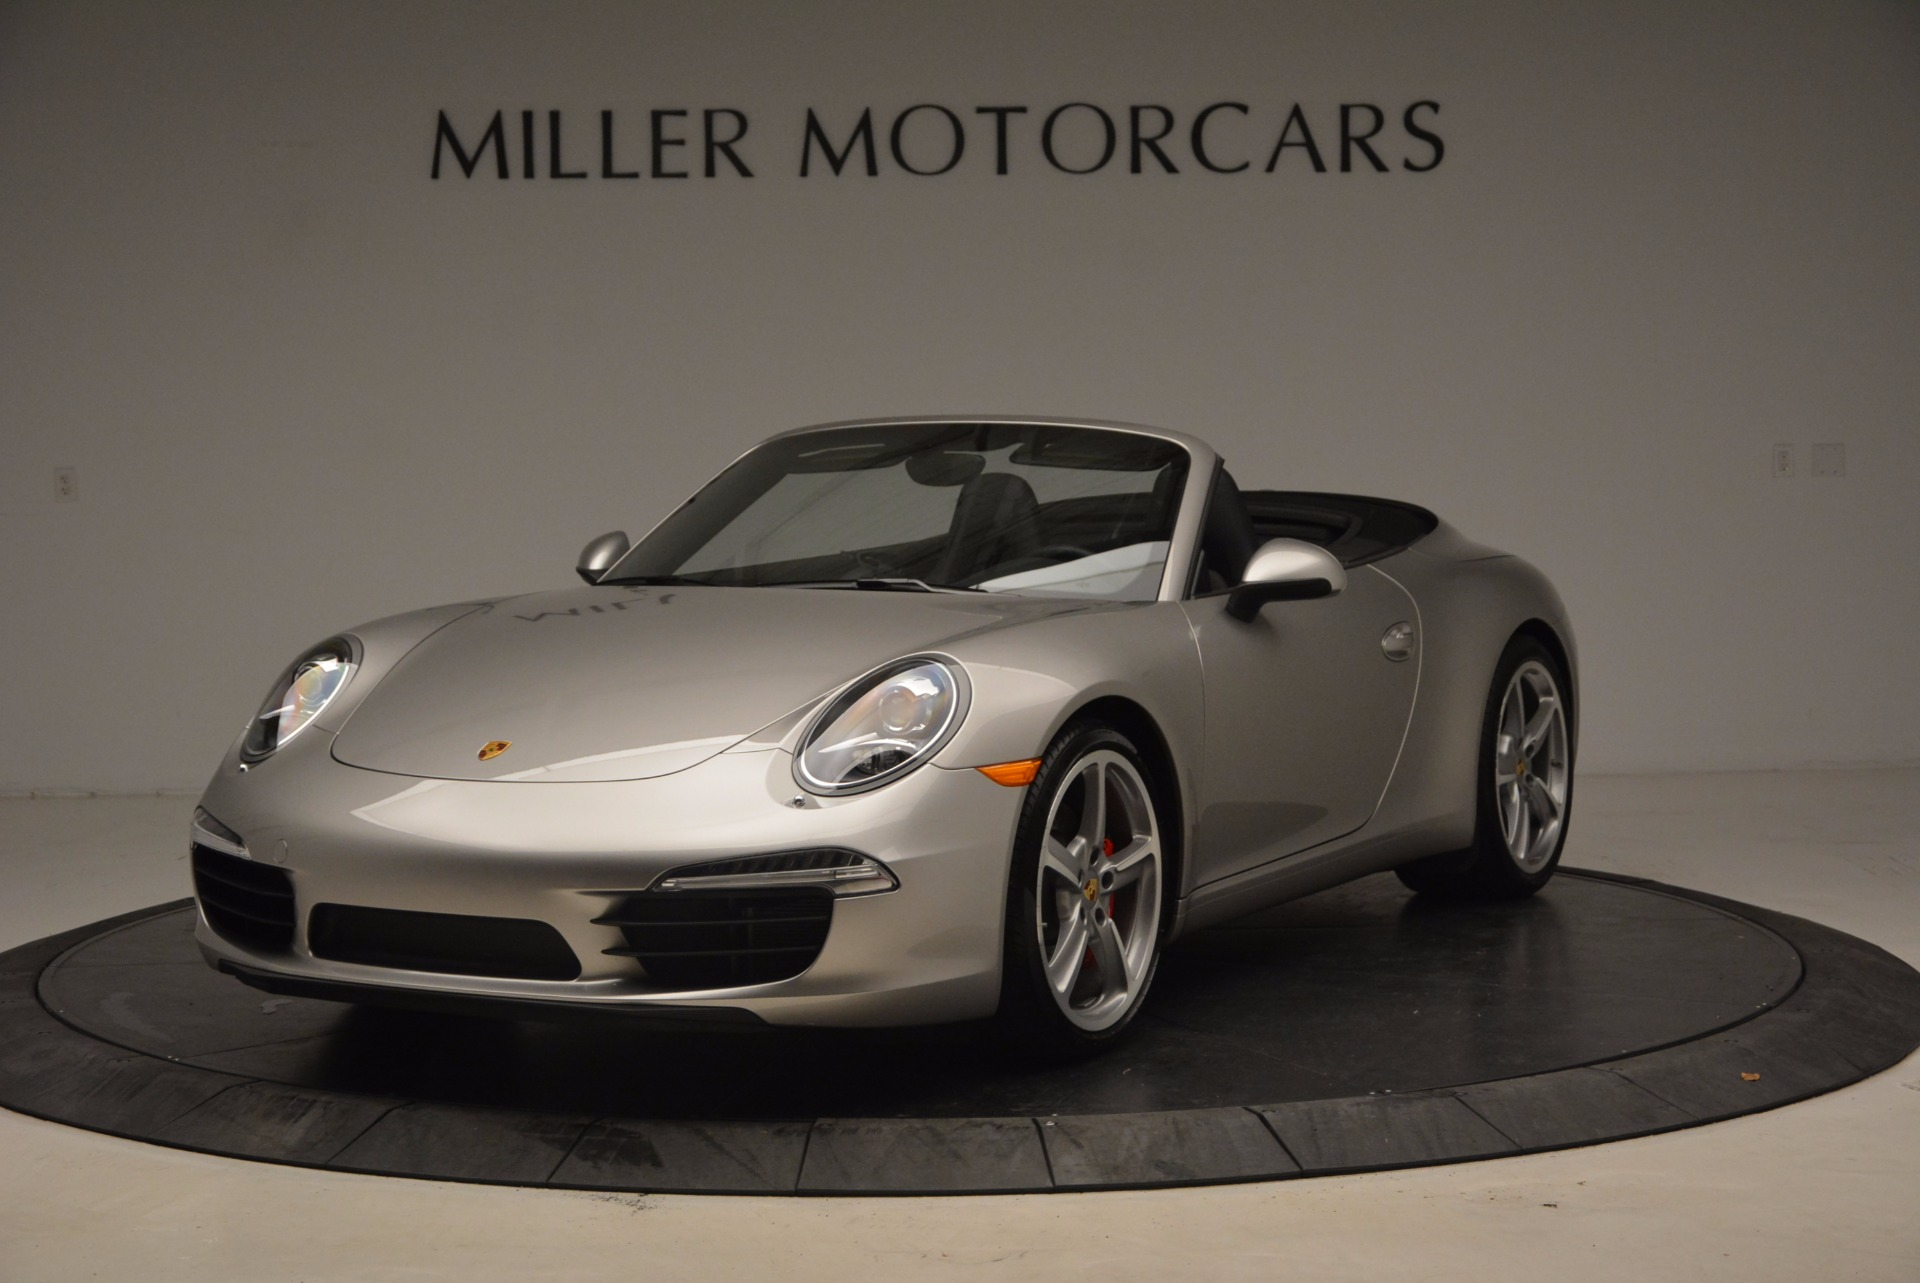 Used 2012 Porsche 911 Carrera S for sale Sold at Pagani of Greenwich in Greenwich CT 06830 1